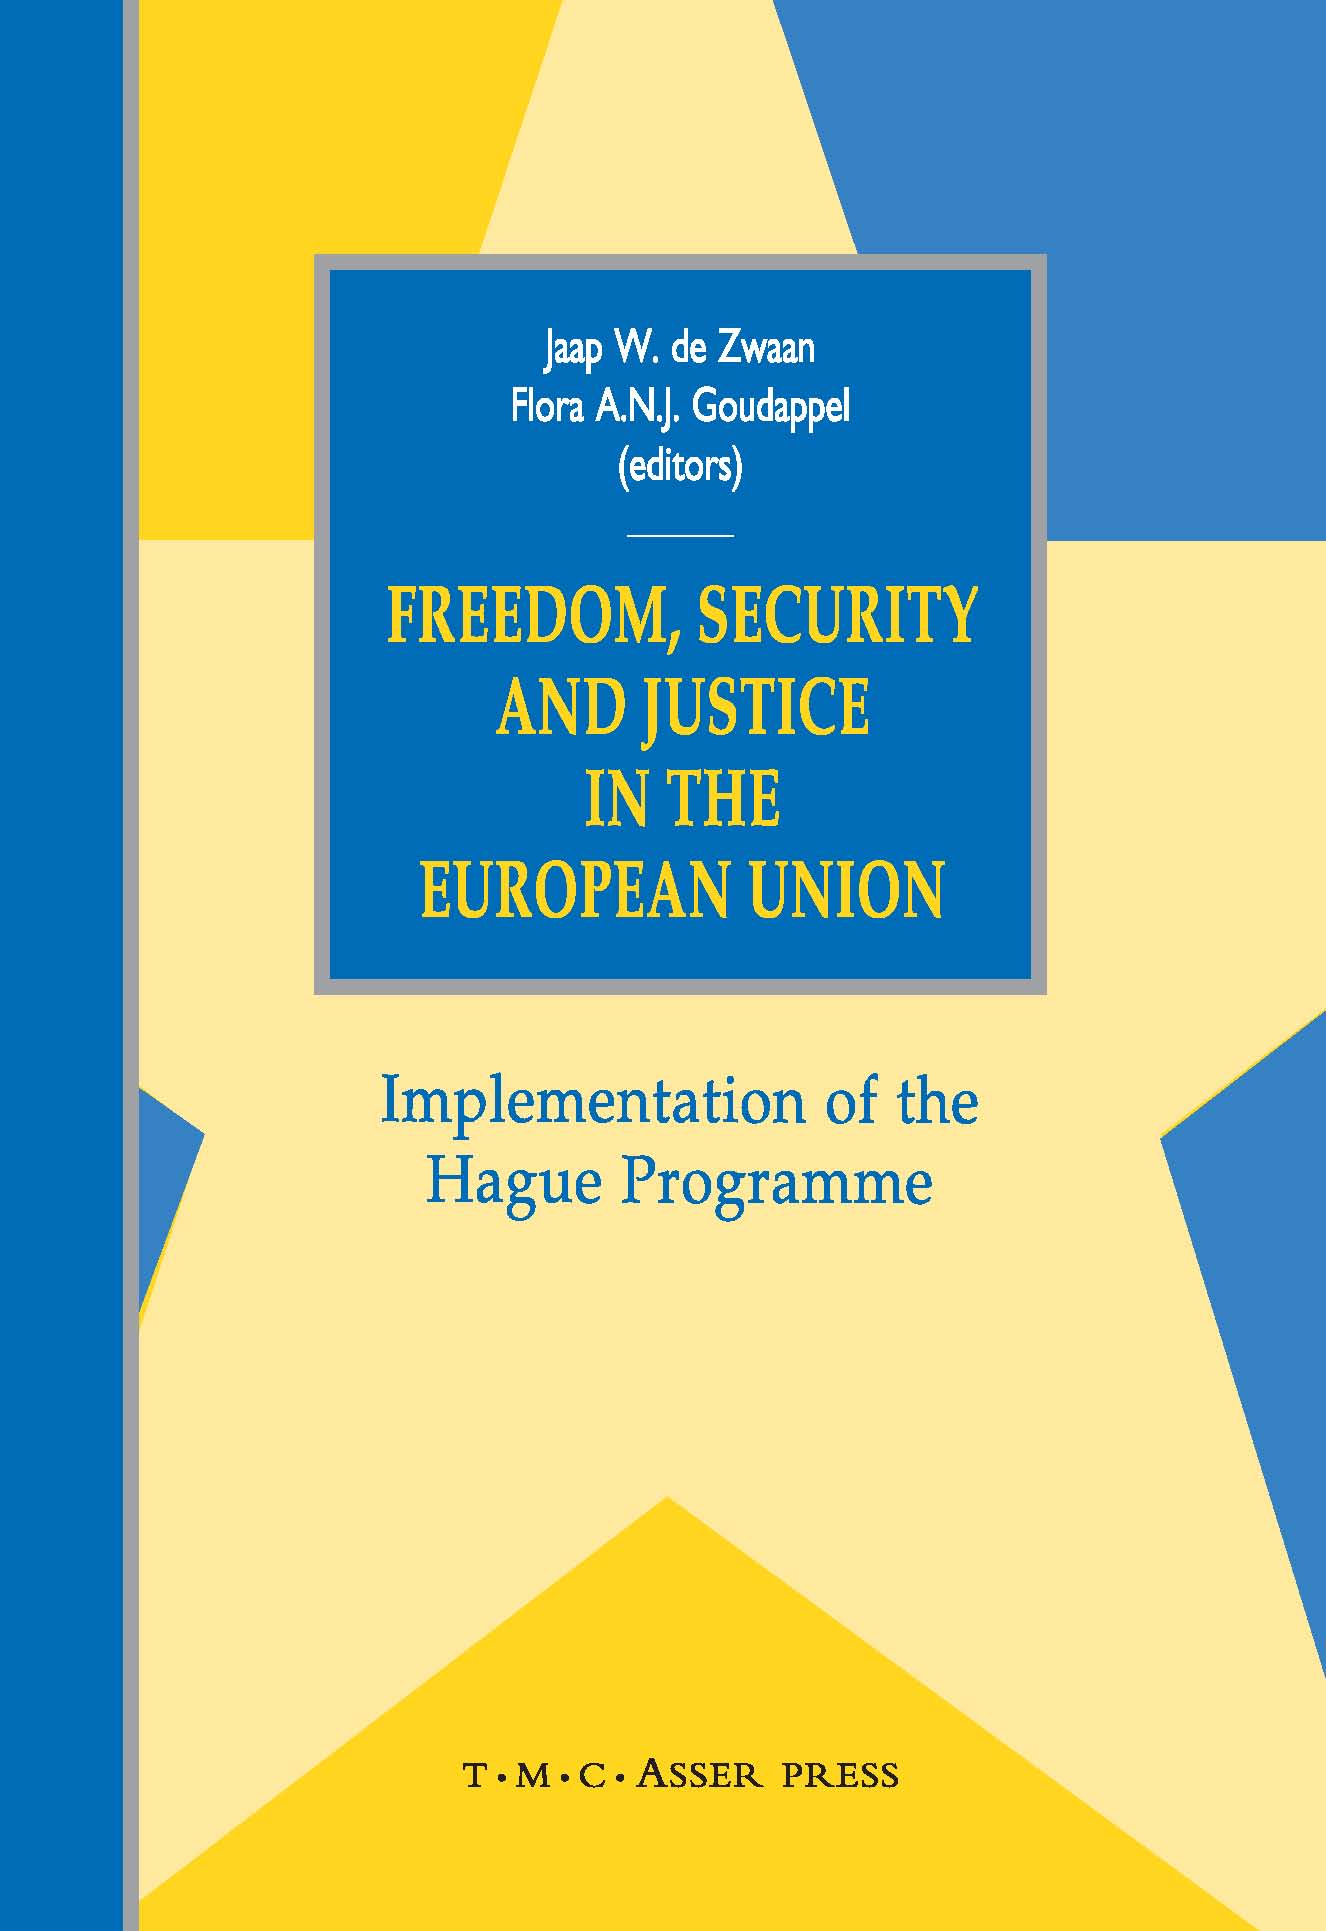 Freedom, Security and Justice in the European Union - Implementation of the Hague Programme 2004